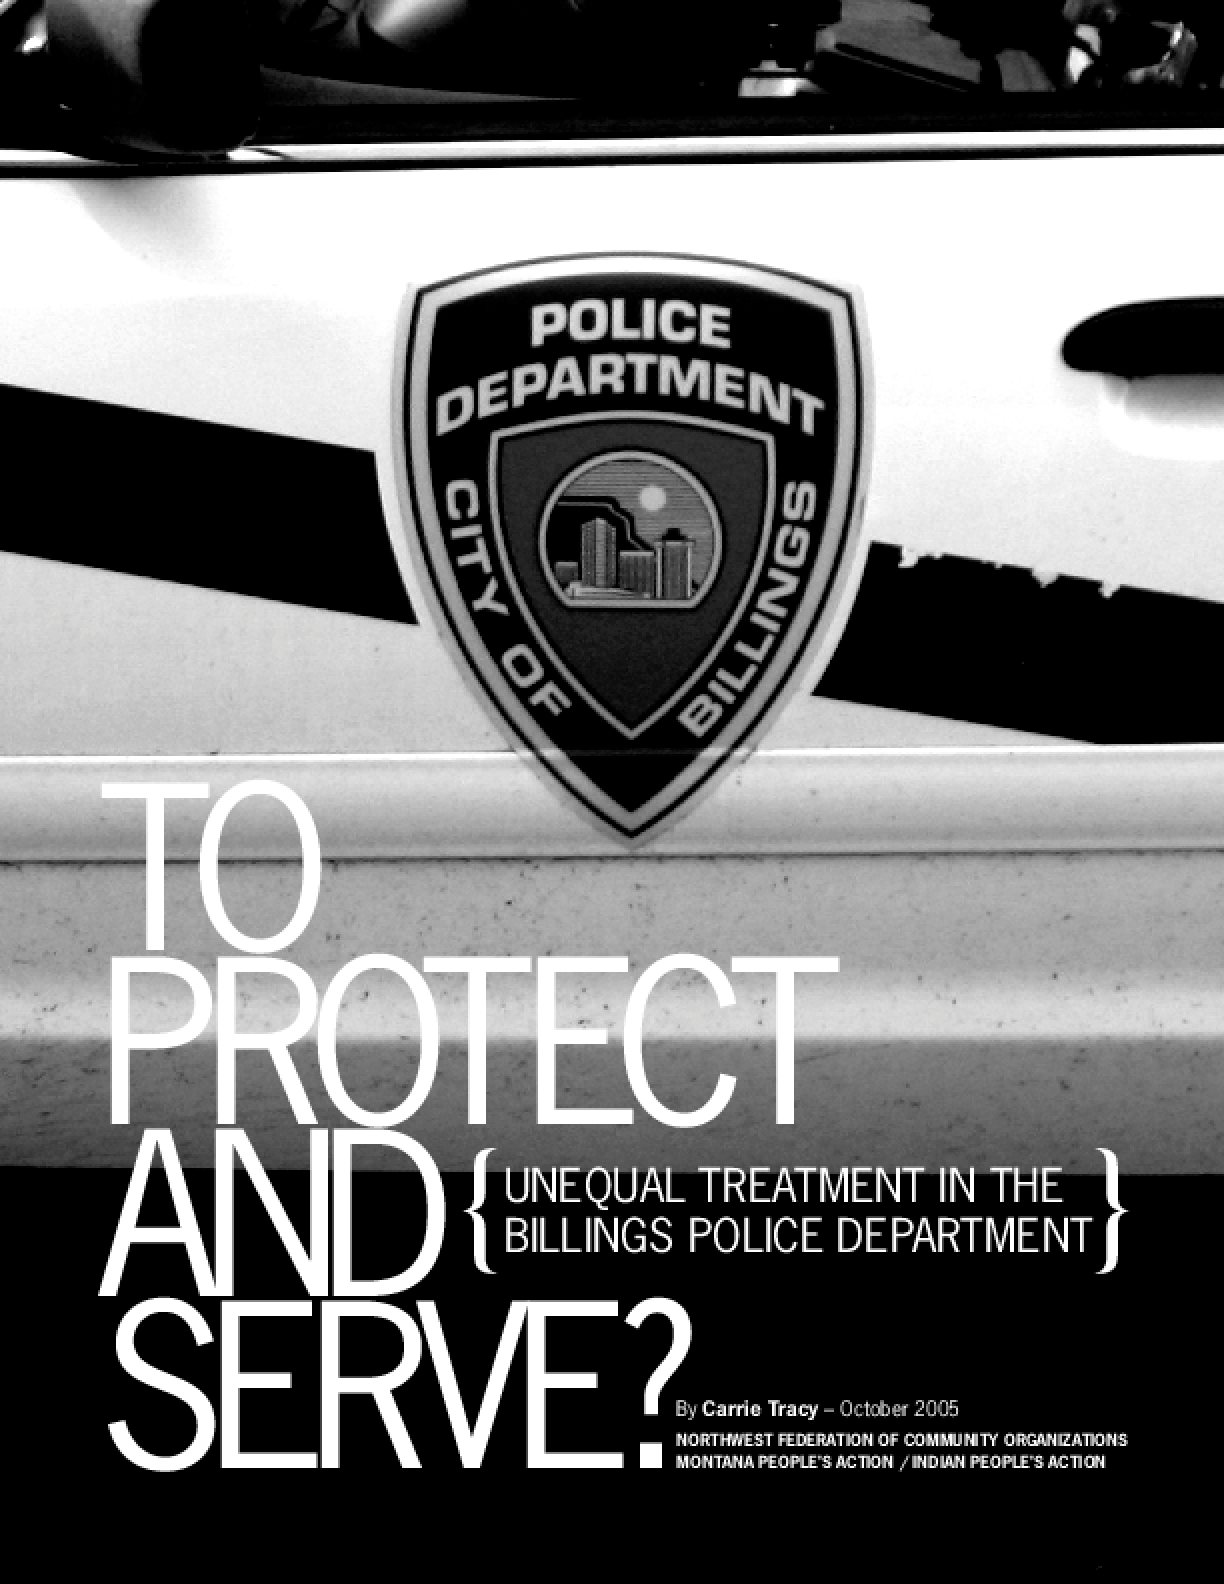 To Protect and Serve? Unequal Treatment in the Billings Police Department